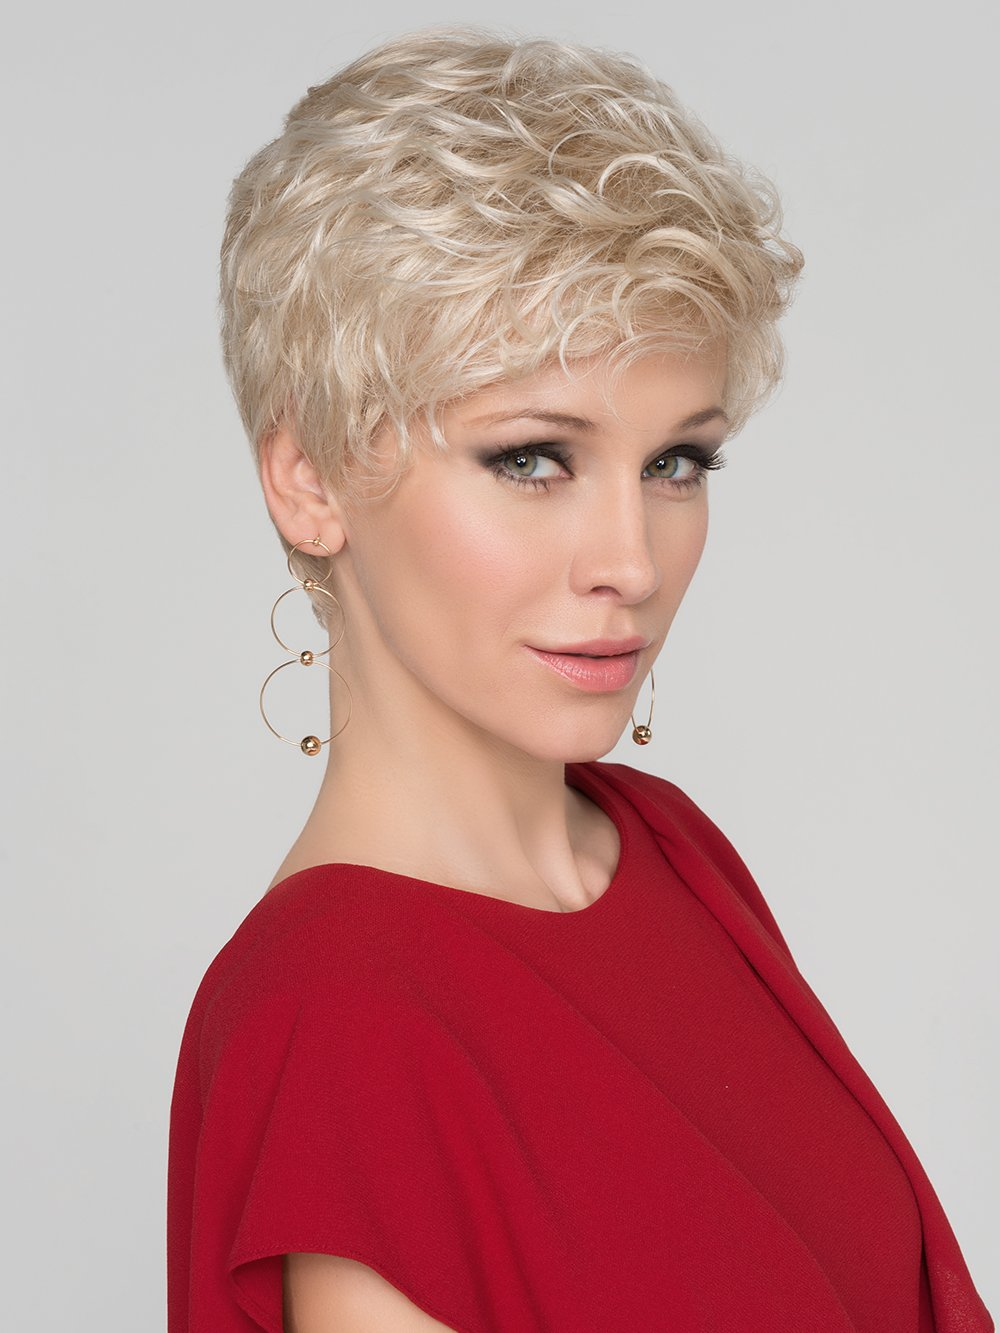 Wear this classic short wig smooth and chic or style with product to create a more modern take